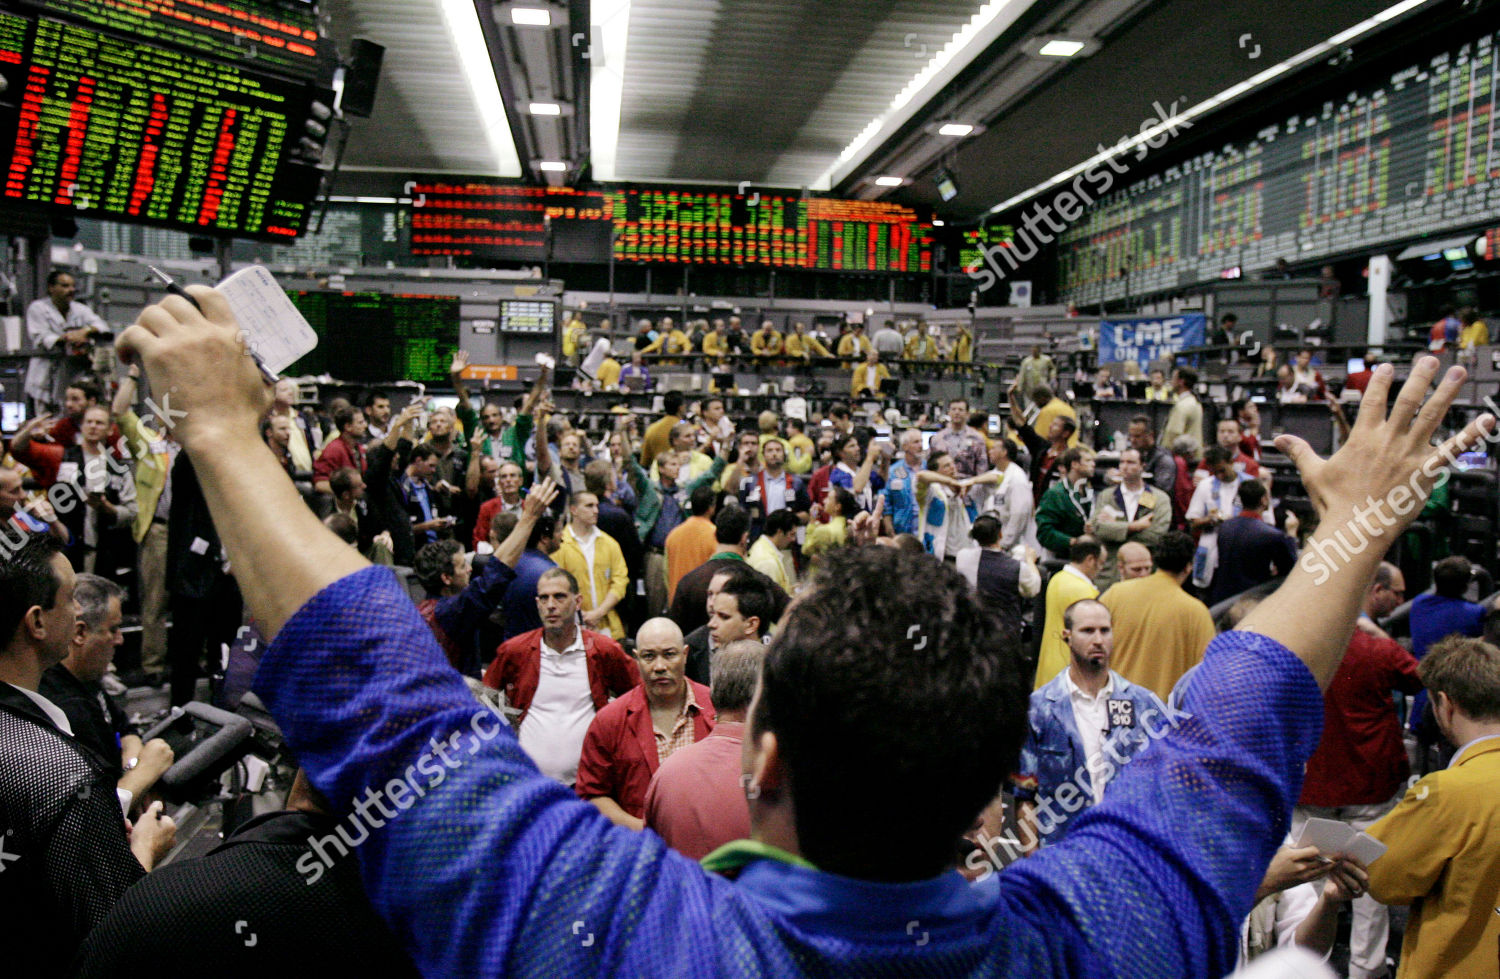 Traders Sp 500 Futures Trading Pit Watch Editorial Stock Photo